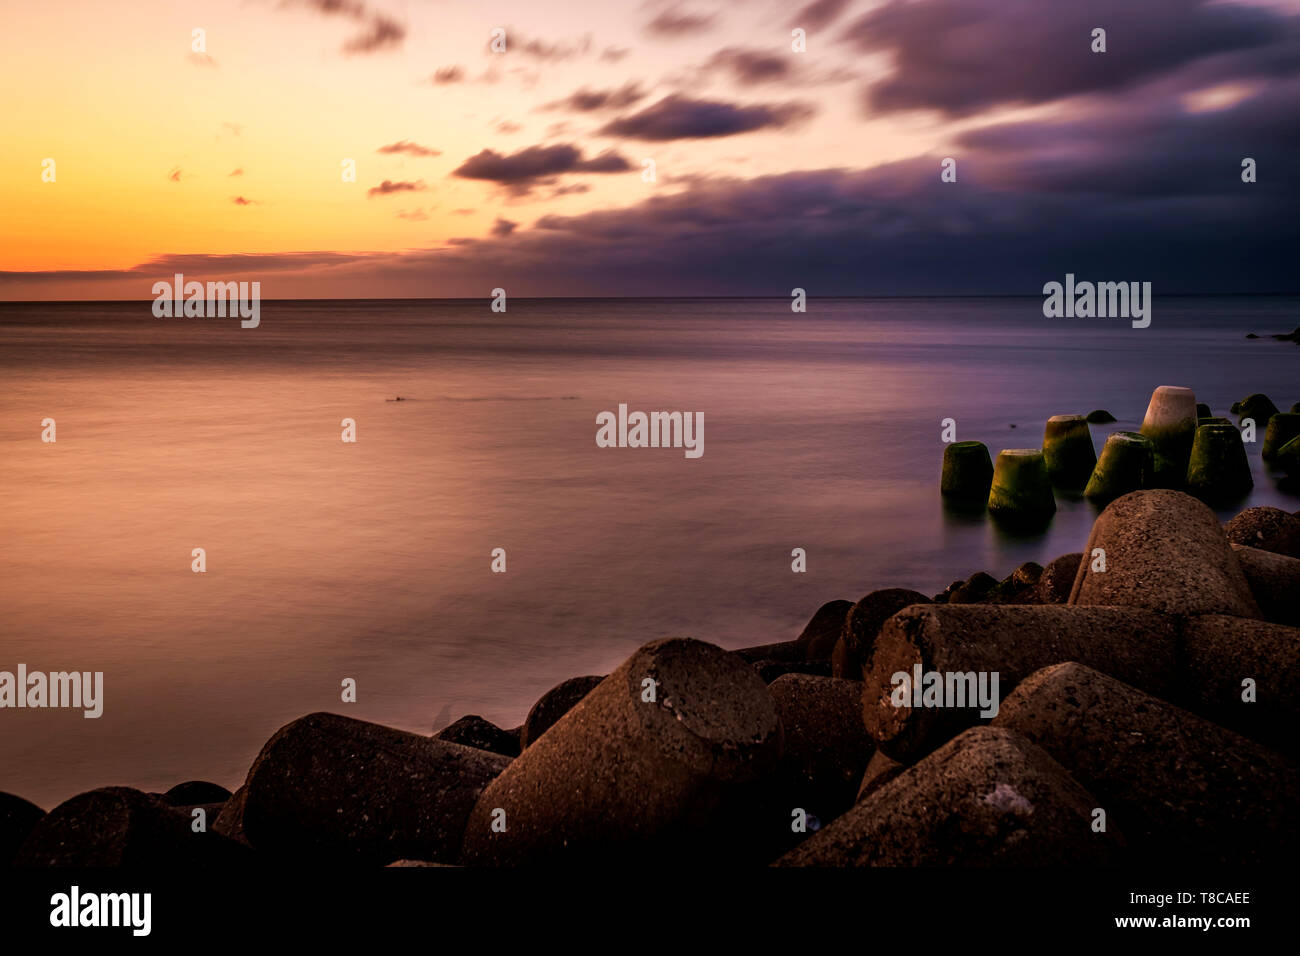 long exposure in the sunset, Jeju, South Korea - Stock Image